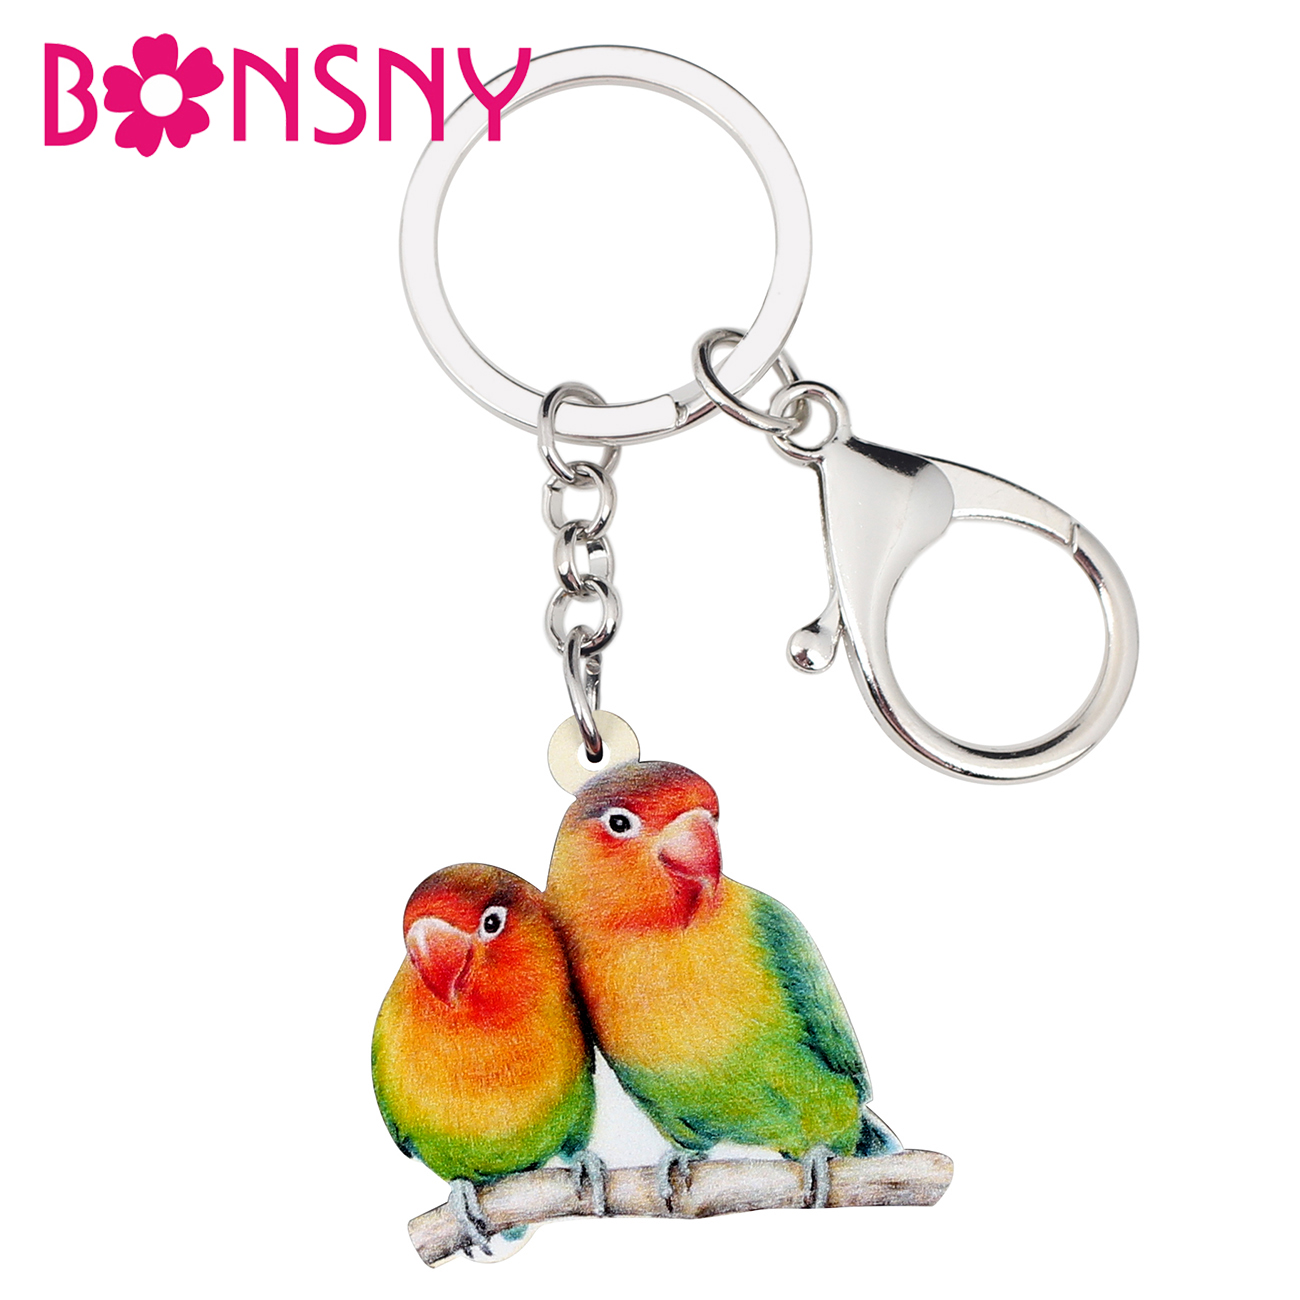 Bonsny Acrylic Africa Fischer's Lovebird Parrot Bird Key Chain Keychains Ring Cute Animal Jewelry For Women Girl Bag Car Pendant